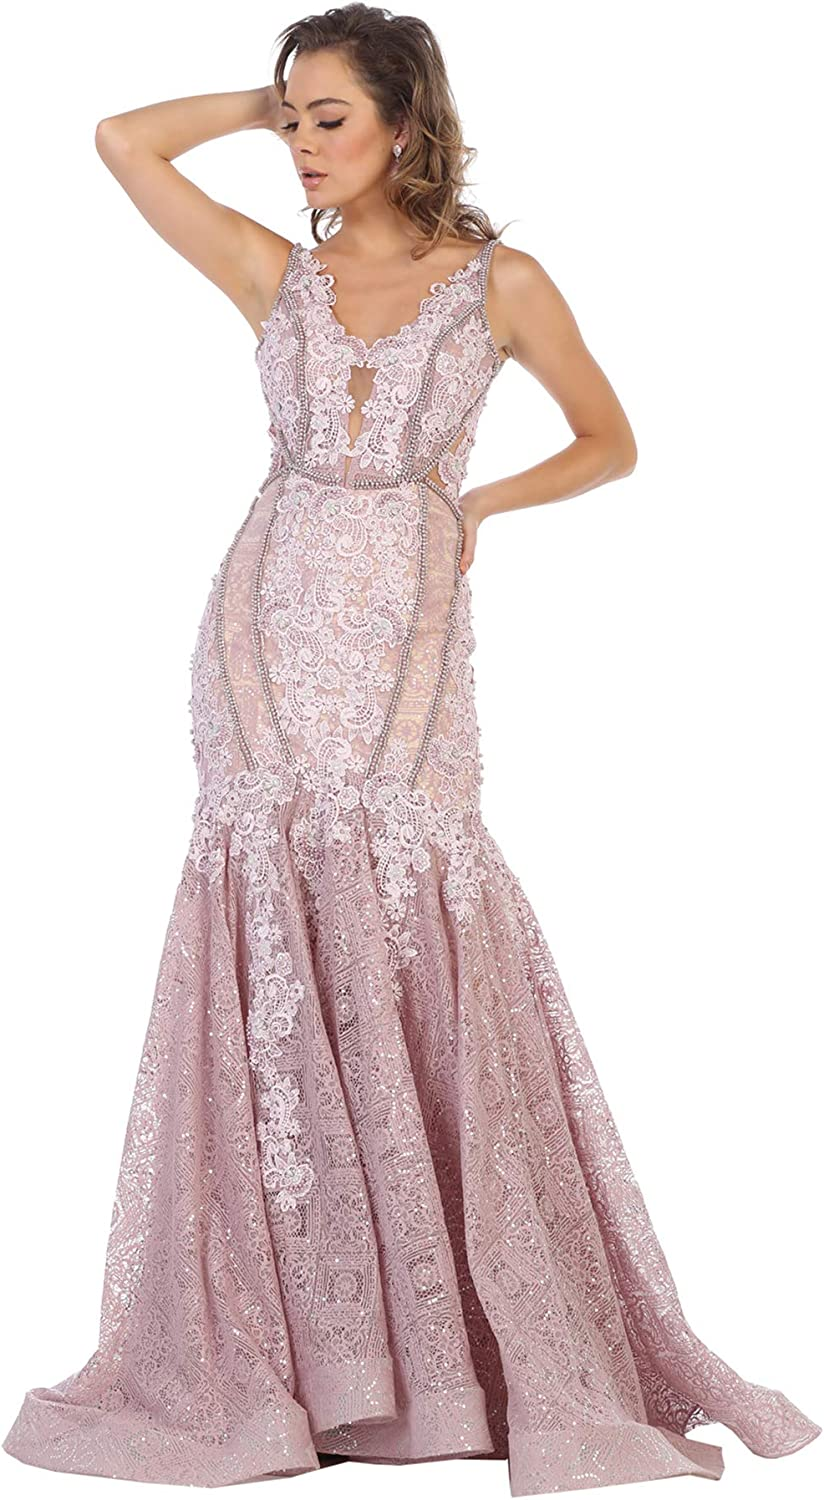 Formal Dress Shops Inc FDS7735 Floral Lace Mermaid Evening Gown